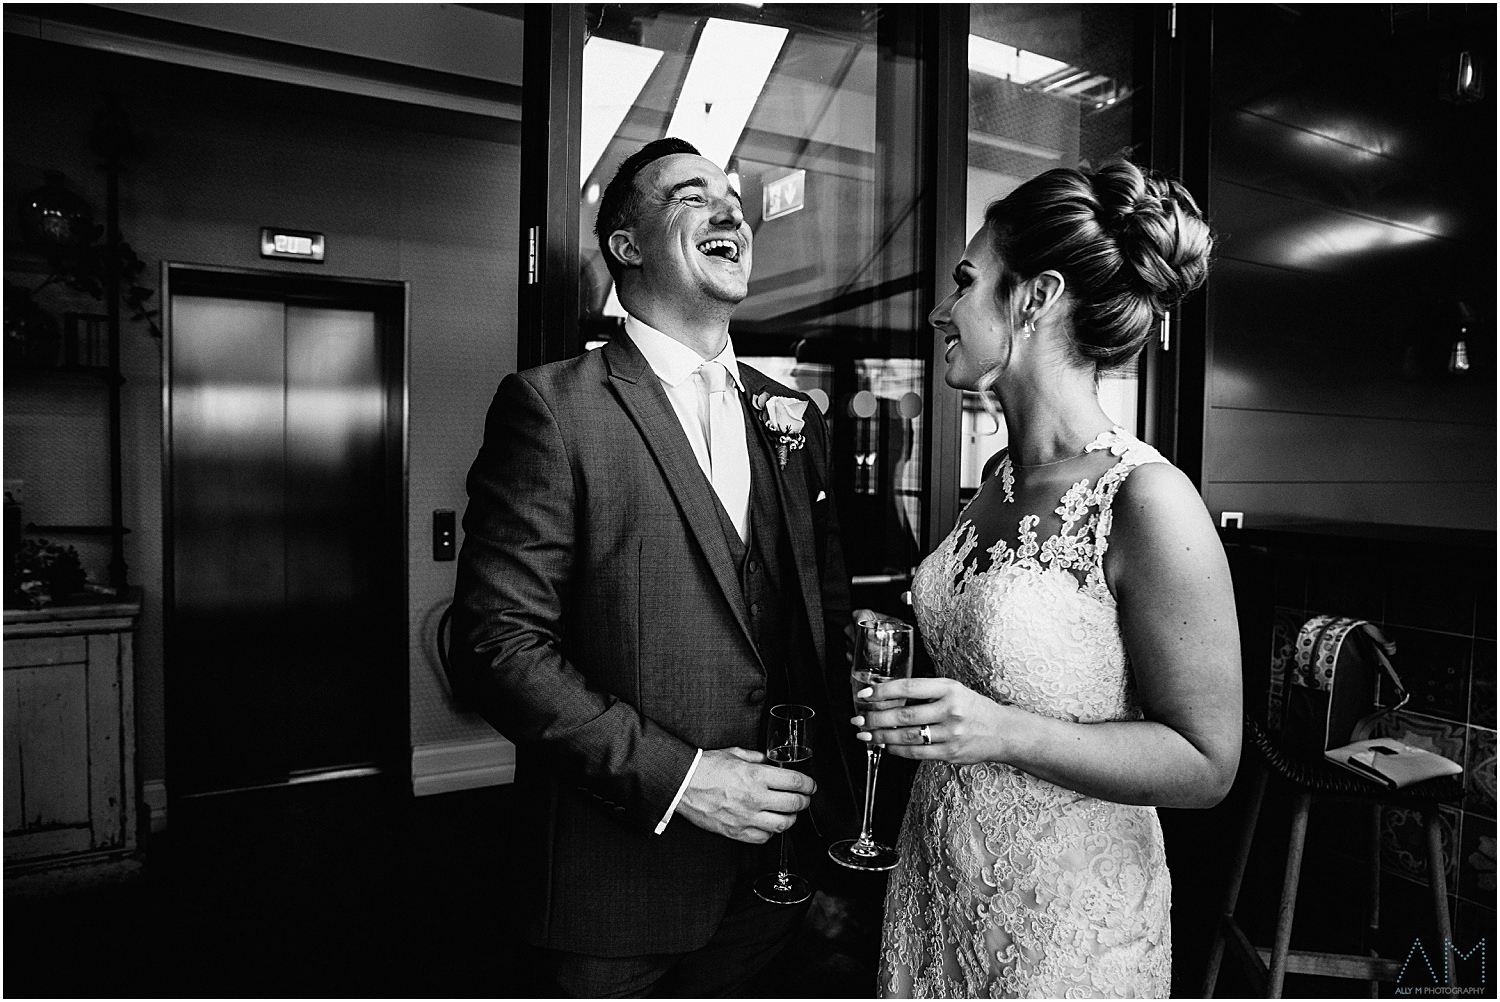 Groom laughing with his bride